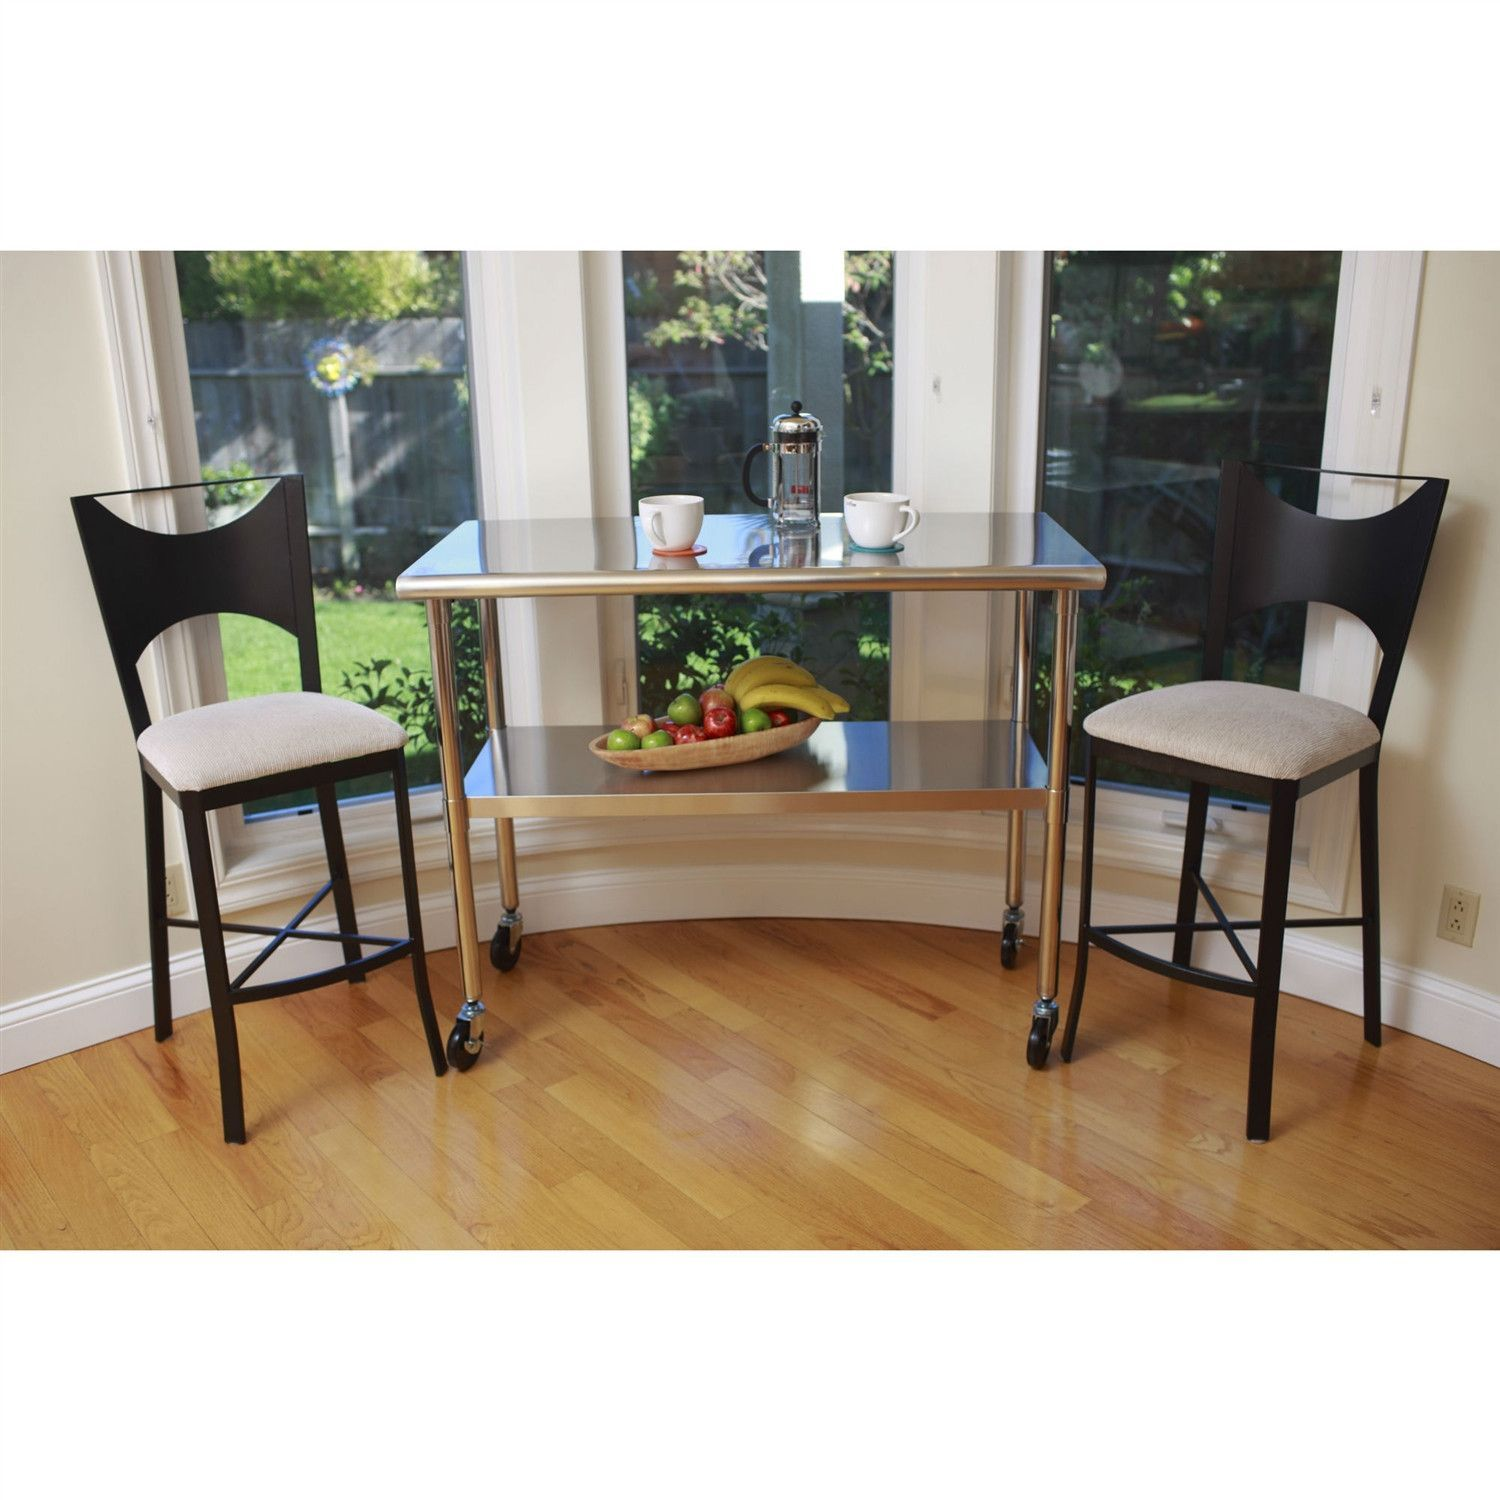 Ft x ft stainless steel top kitchen prep table with locking